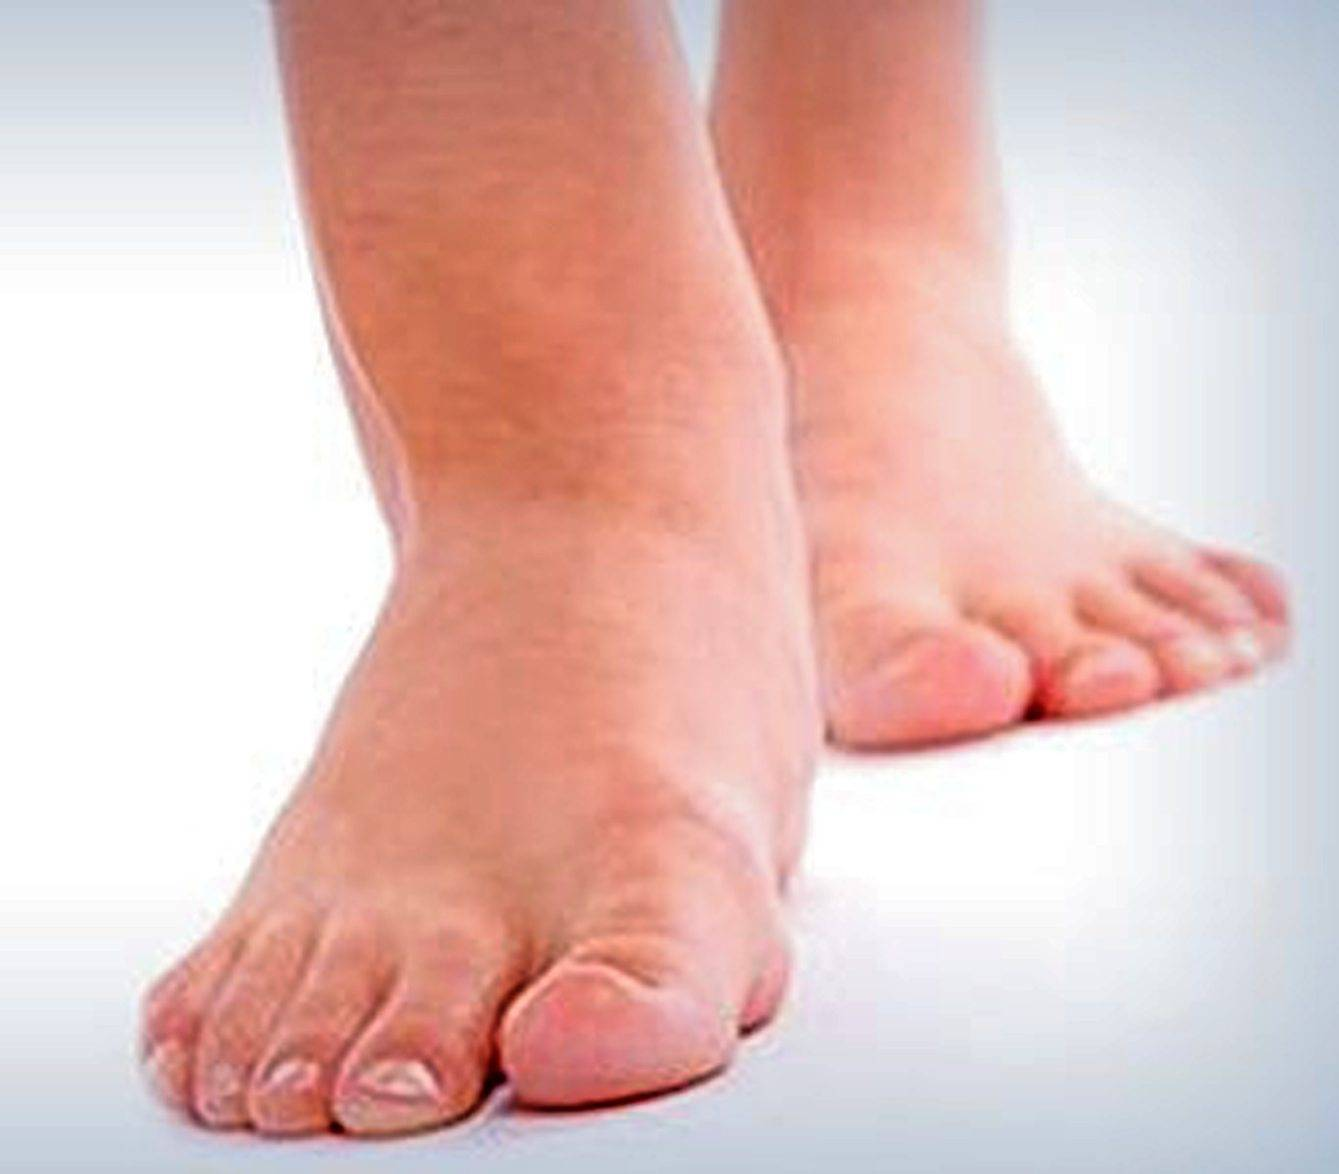 Swollen feet, ankles or legs could be a sign of heart failure.